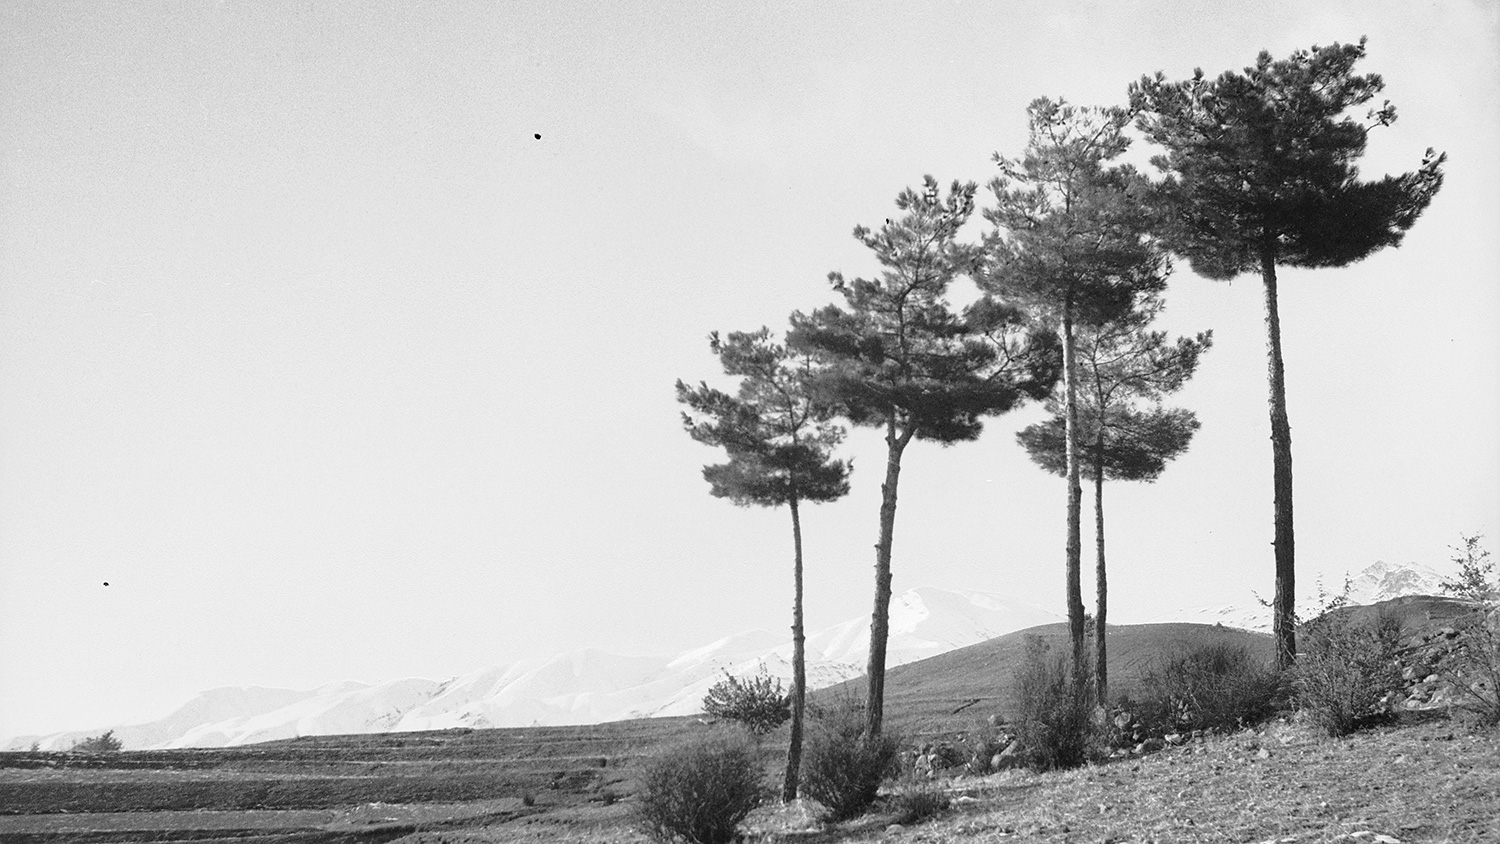 Trees in foreground, snow-covered hills in background